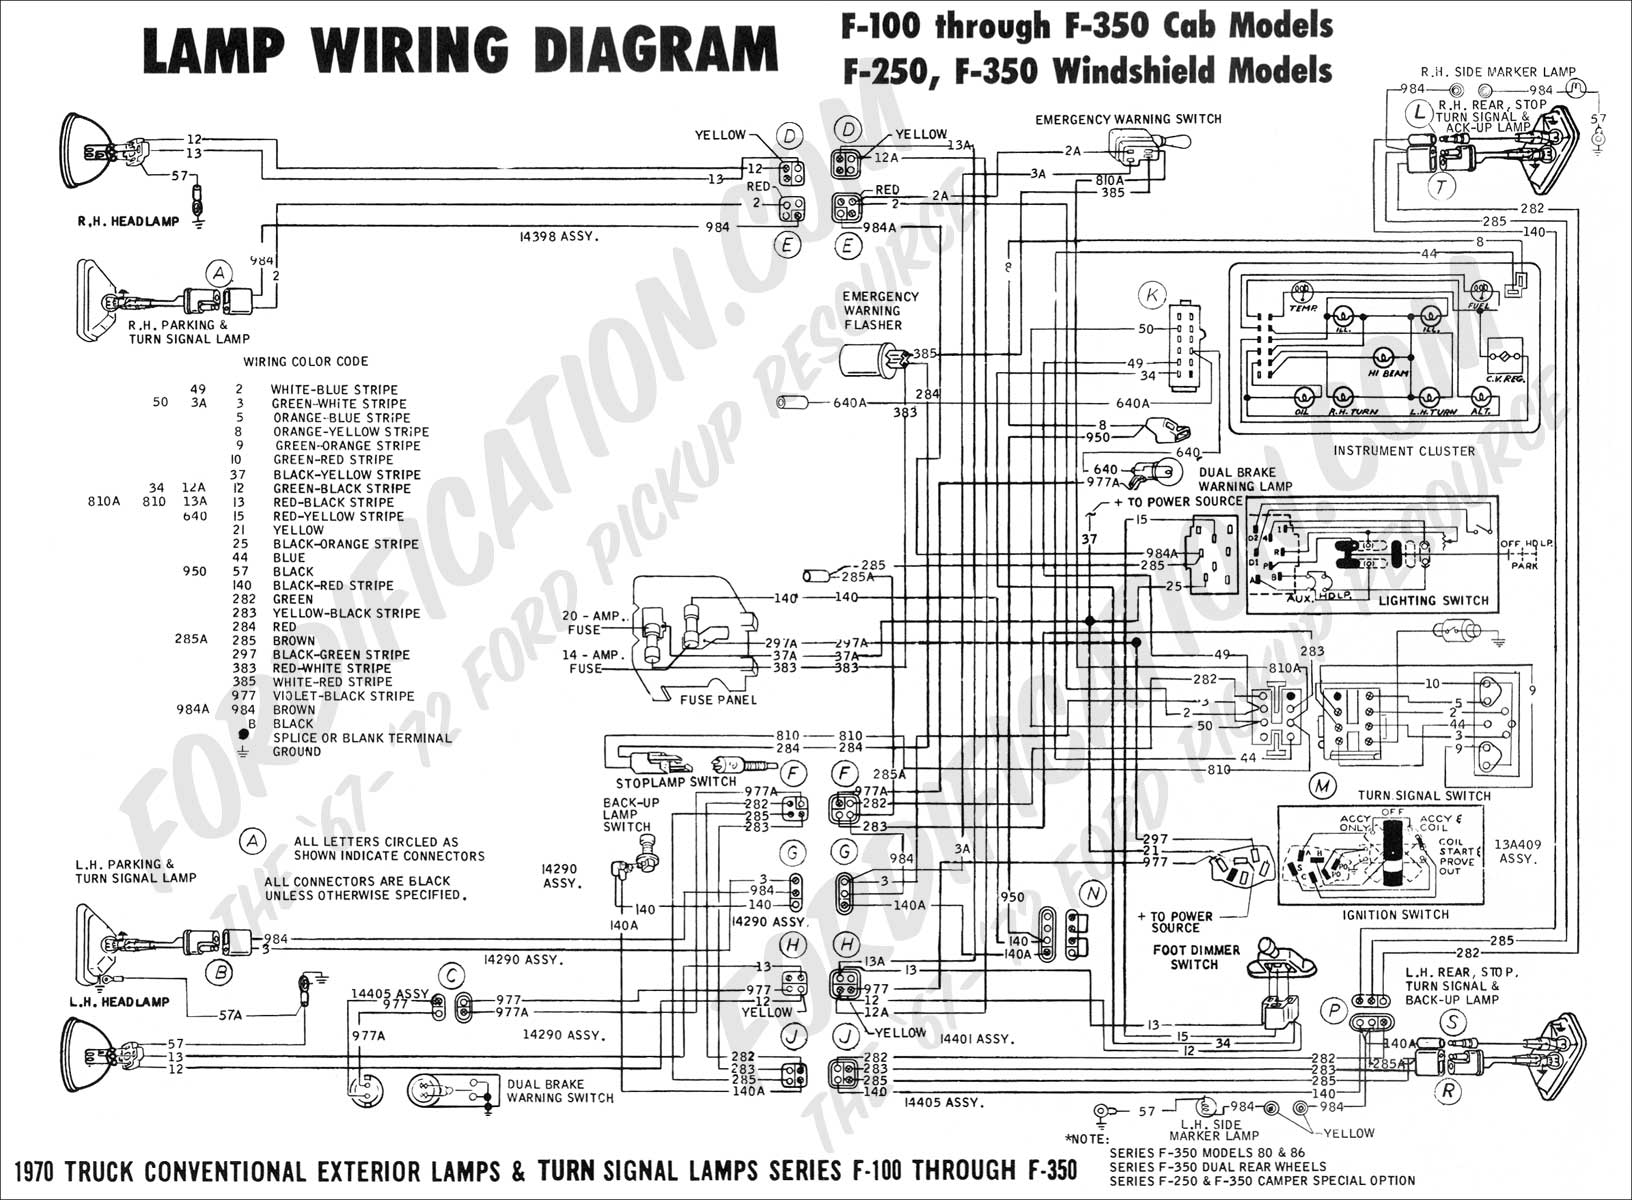 wiring diagram_70ext lights01 ford truck technical drawings and schematics section h wiring 2008 f250 headlight wiring diagrams at creativeand.co